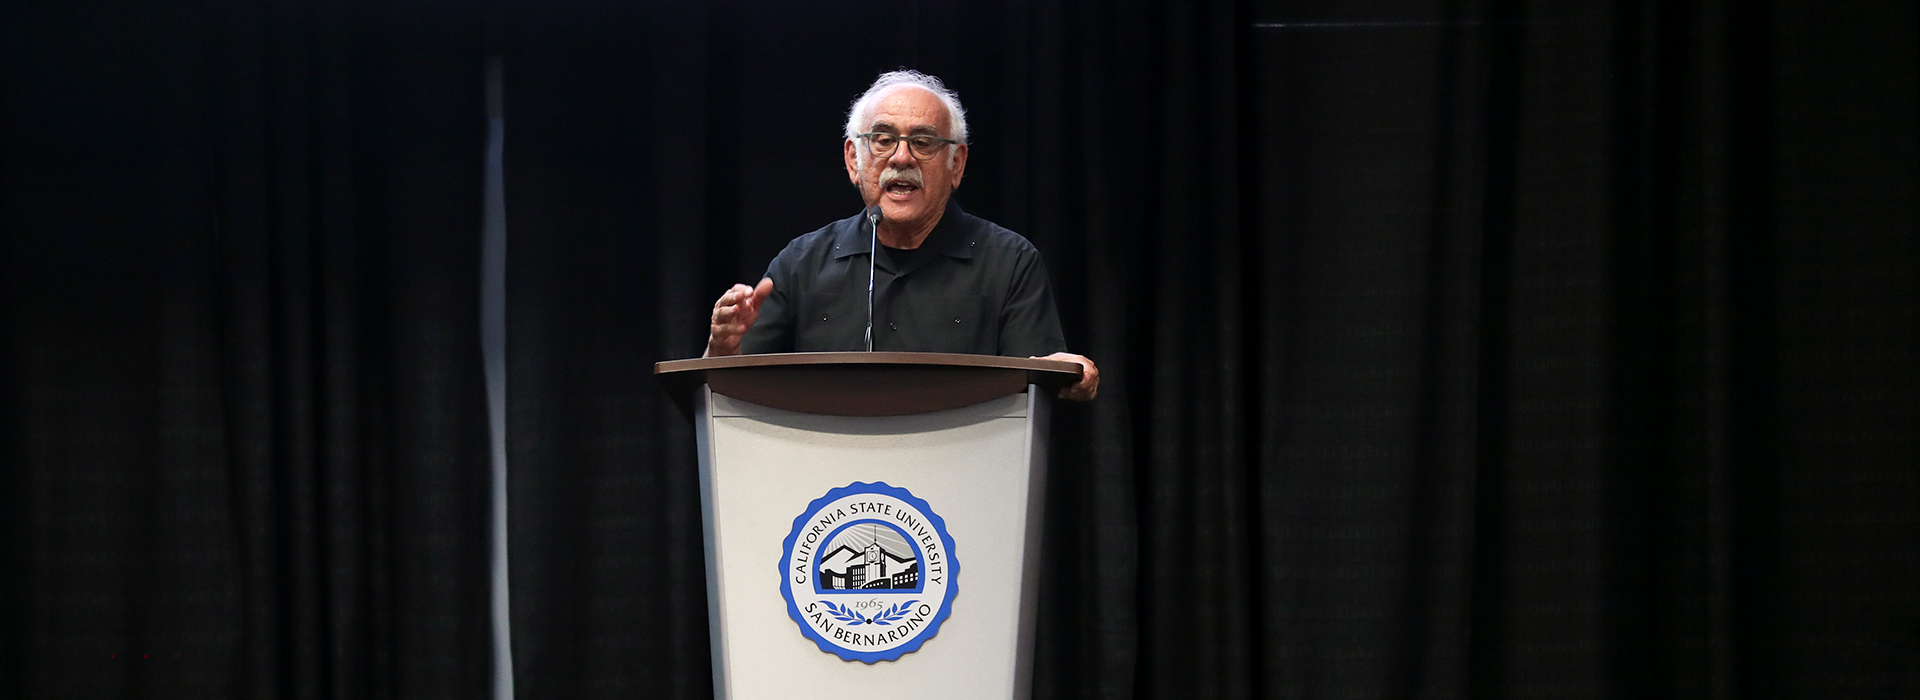 CSUSB Hispanic Heritage Month celebration concludes with 'Singing Our Way to Freedom'